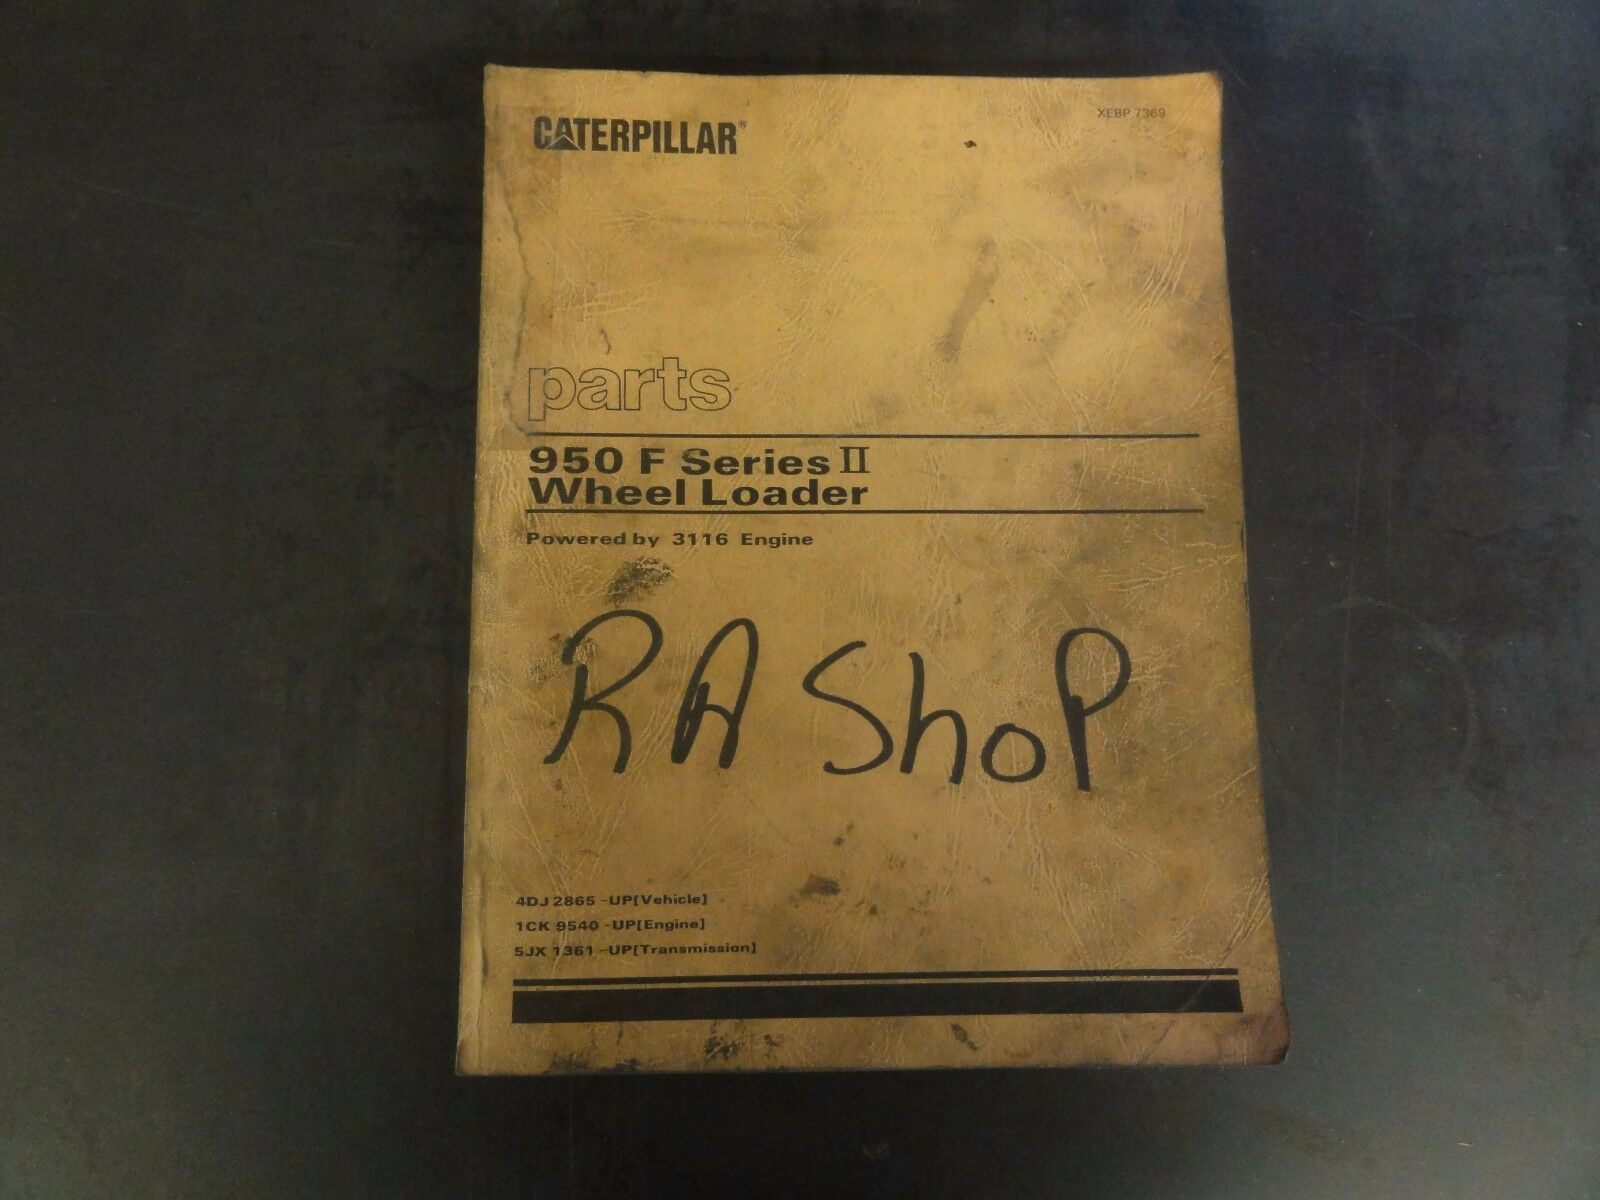 Caterpillar CAT 950 F Series II Wheel Loader Parts Manual 4DJ XEBP7369 1 of  7Only 2 available ...